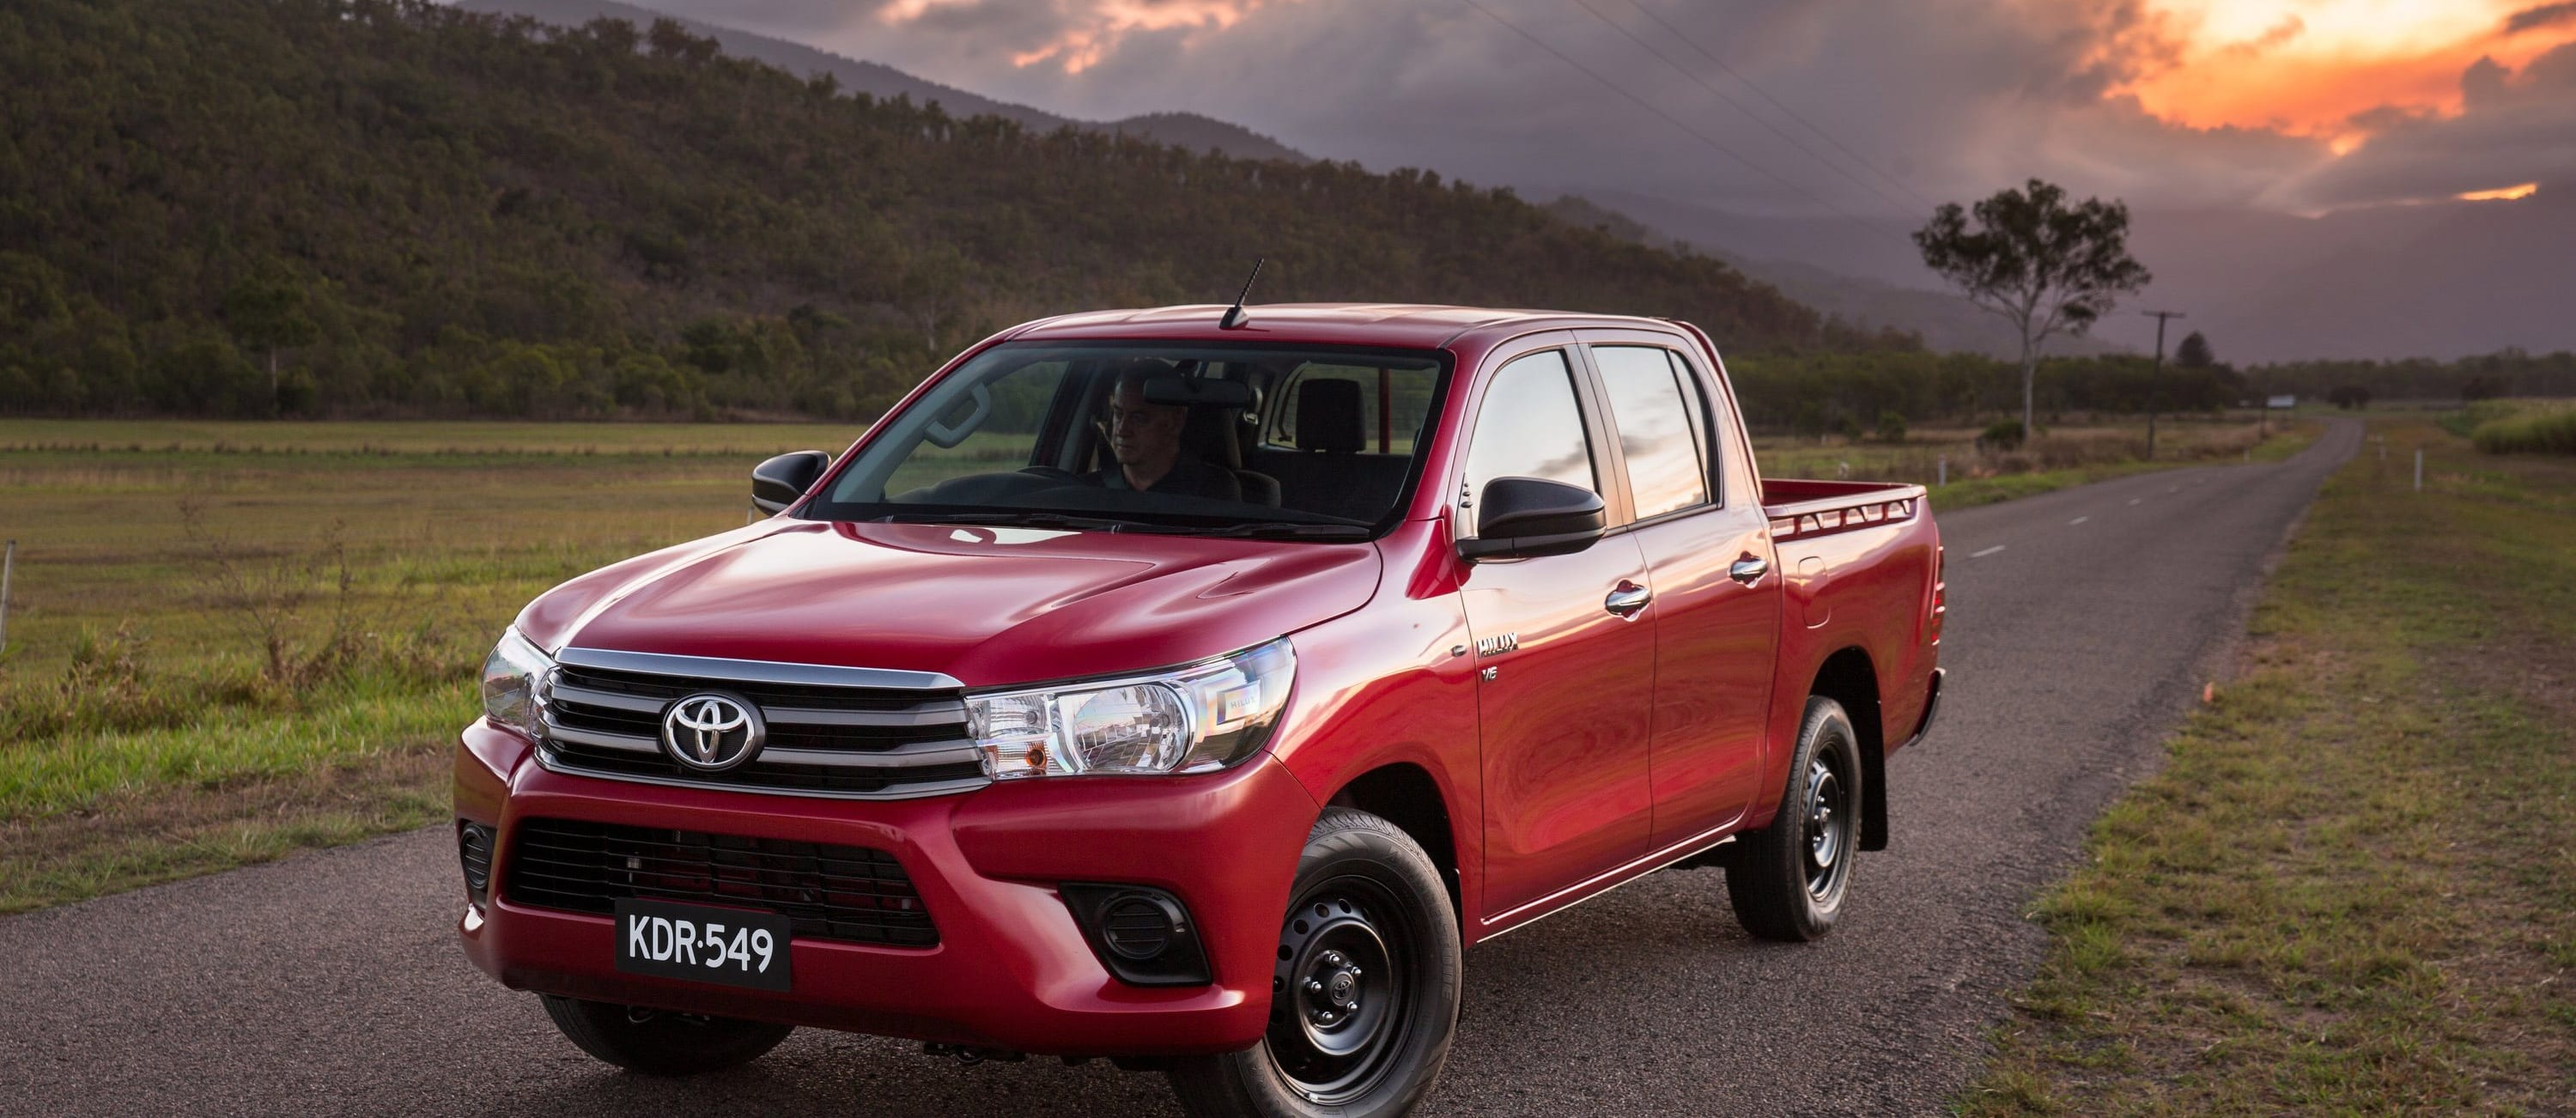 2016 Toyota Hilux Front Static Jpg